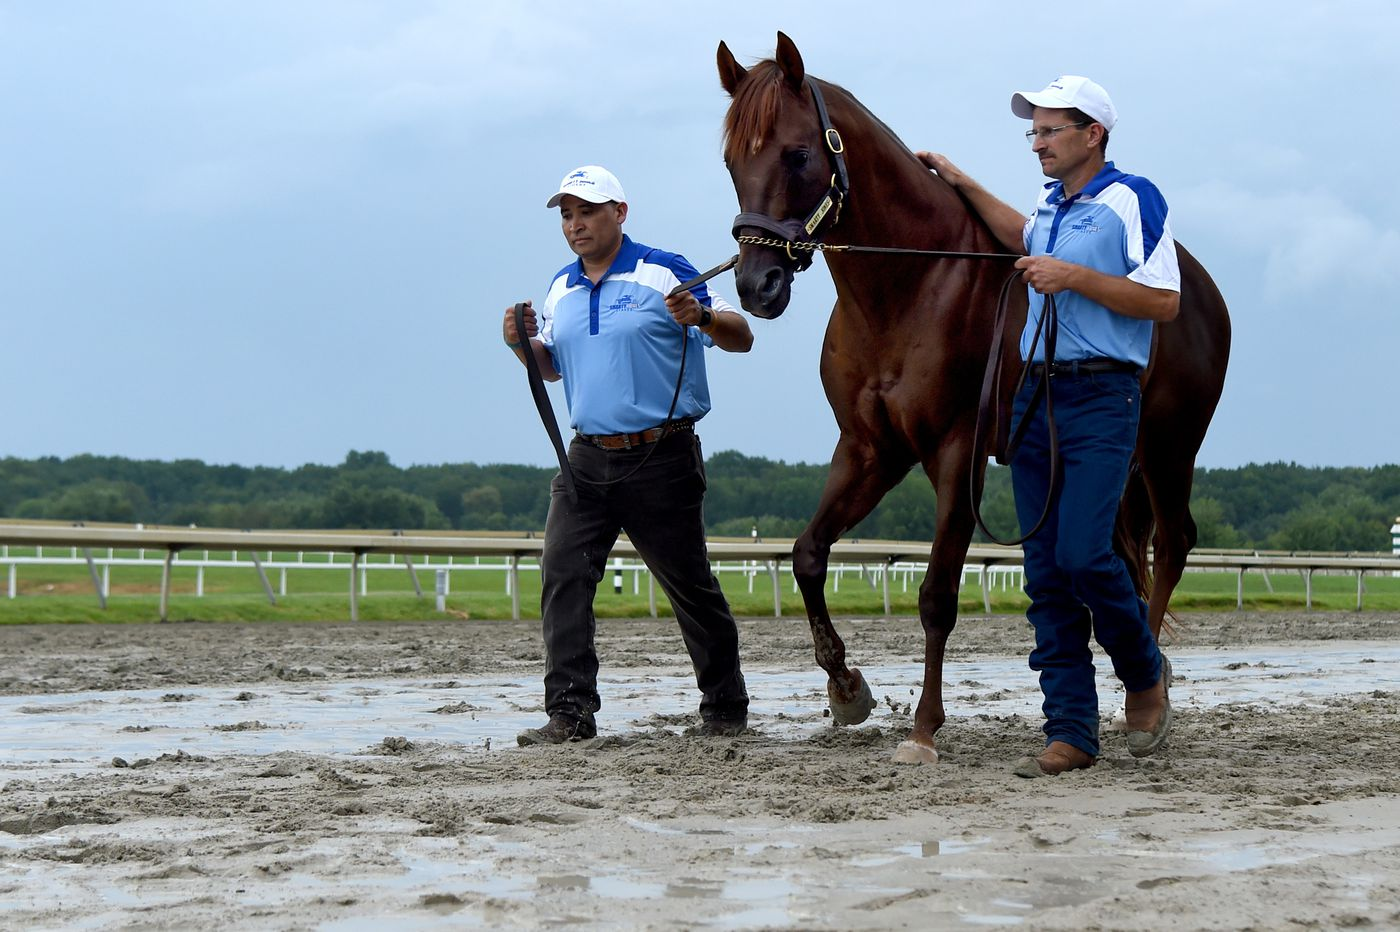 A perfect return at Parx for Smarty Jones